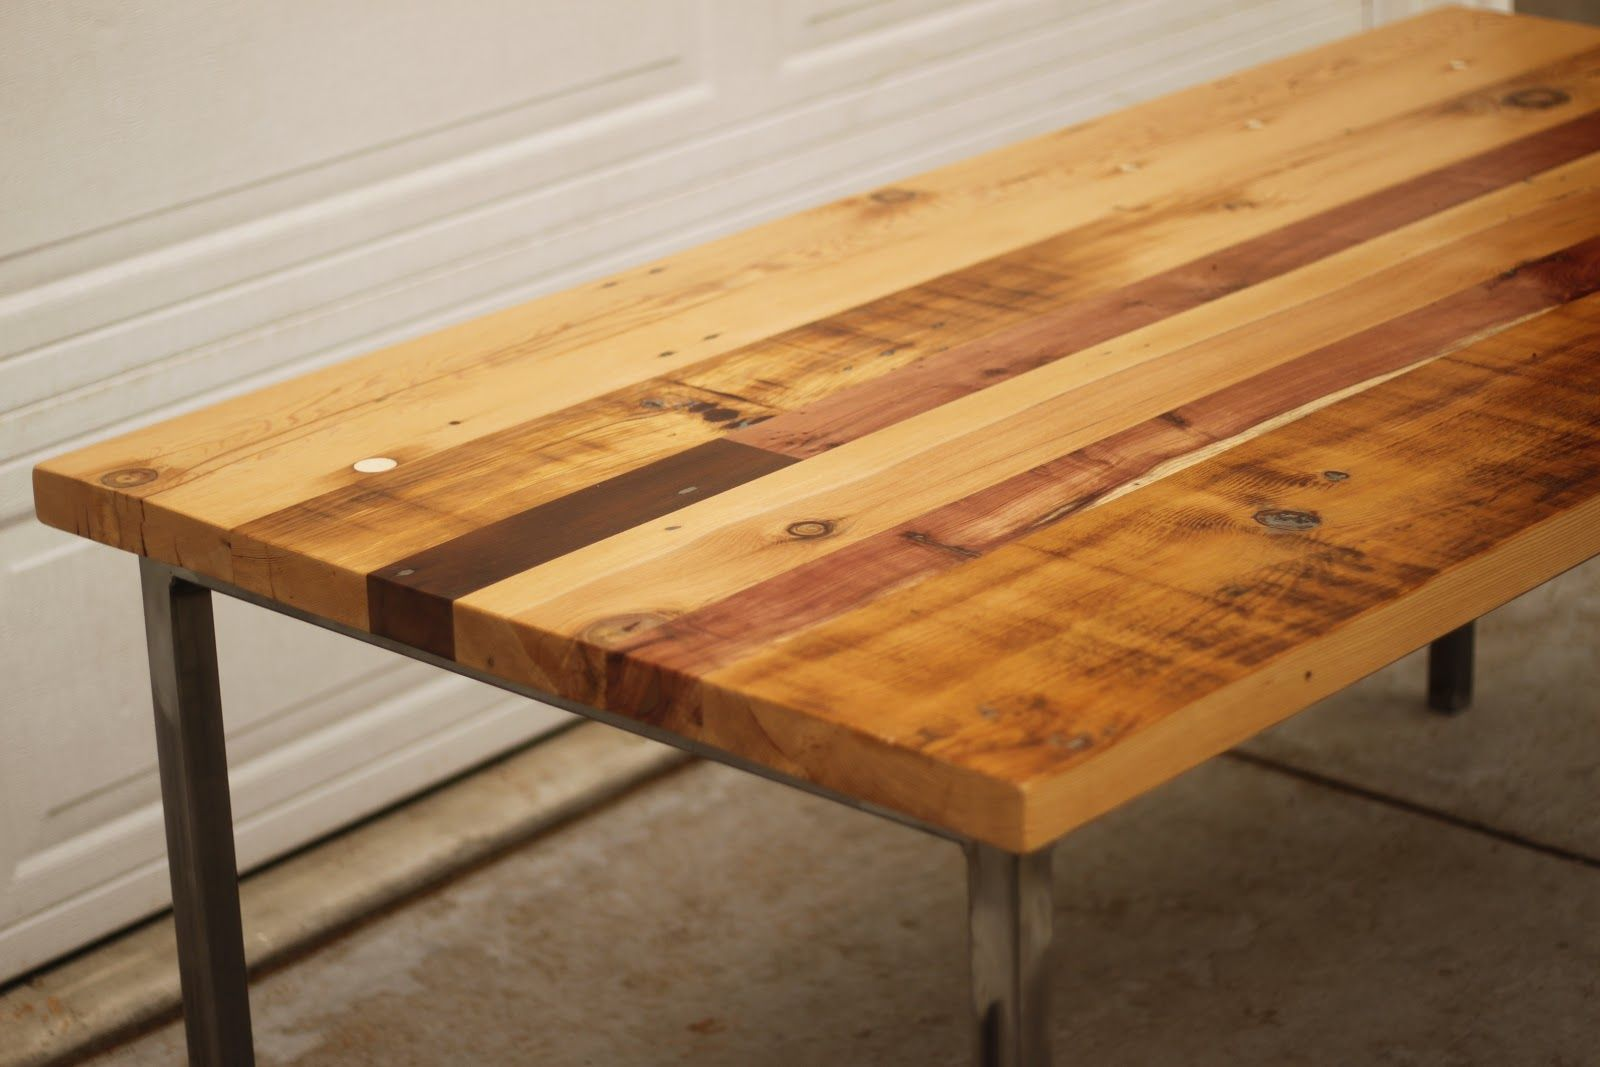 Simple Country Reclaimed Wood Table With Metal Base Legs As Rustic Dining  Table On Concrete Floor